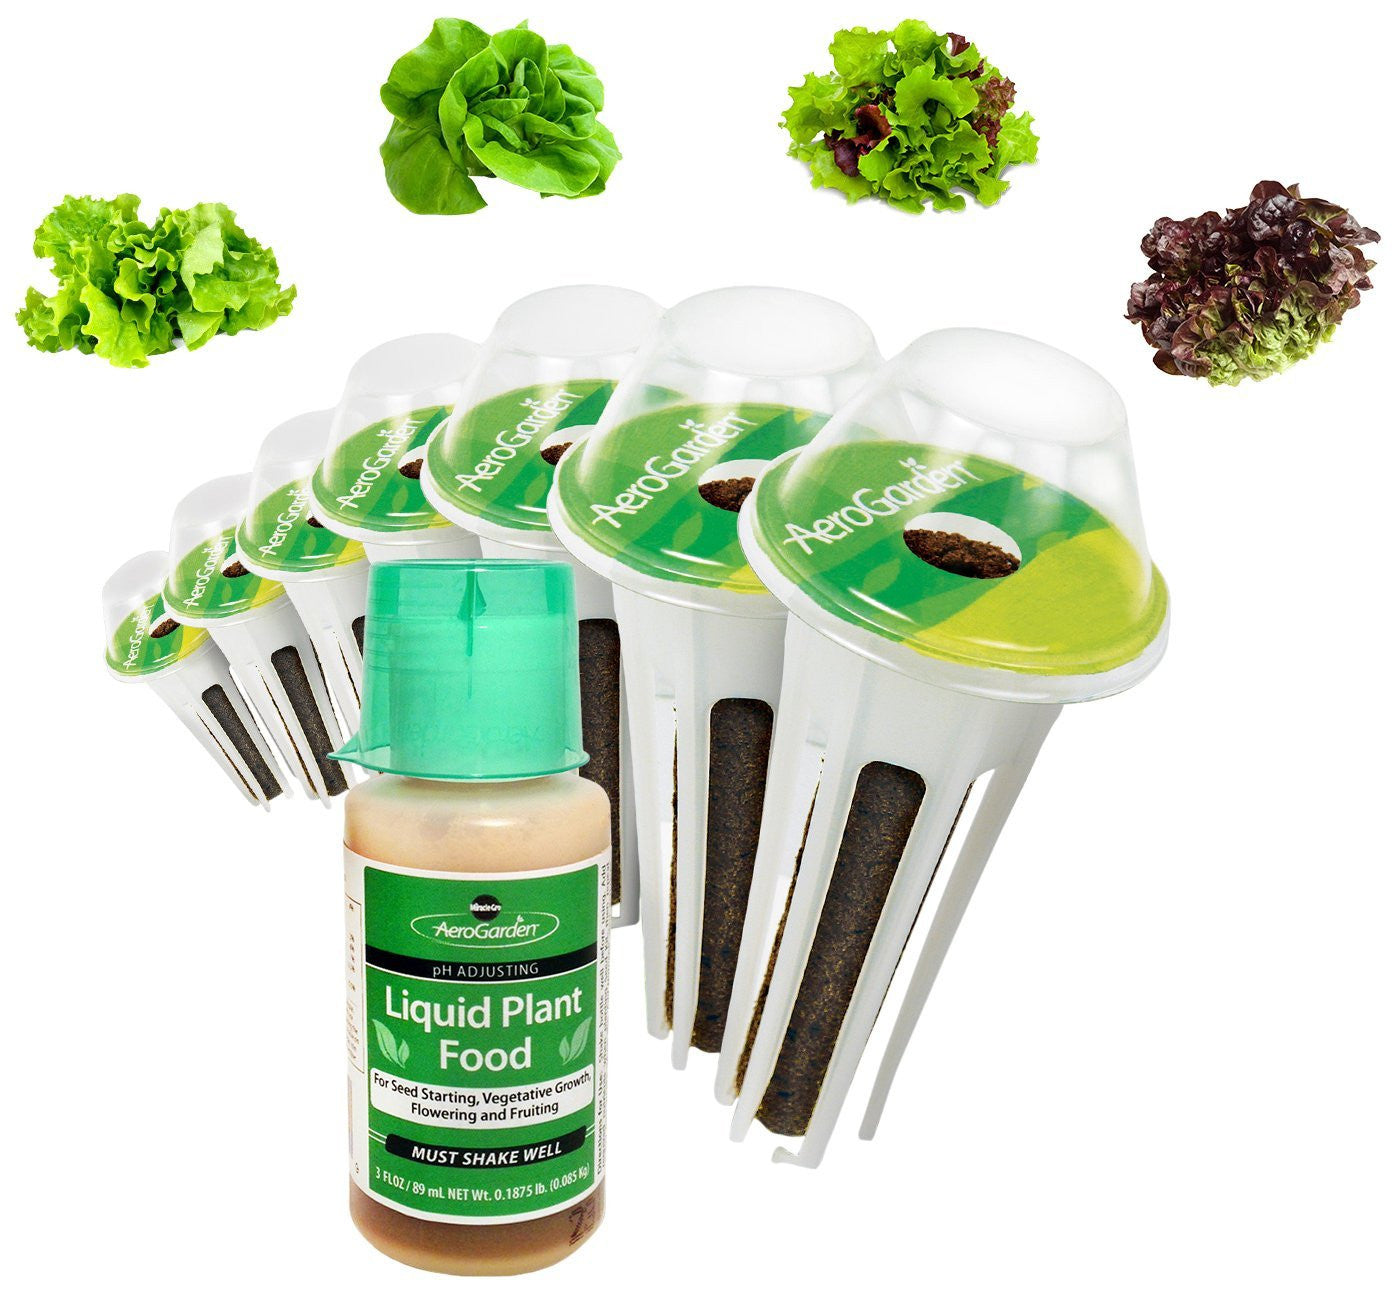 Miracle-Gro AeroGarden Salad Greens Mix Seed Pod Kit - EarthCitizen